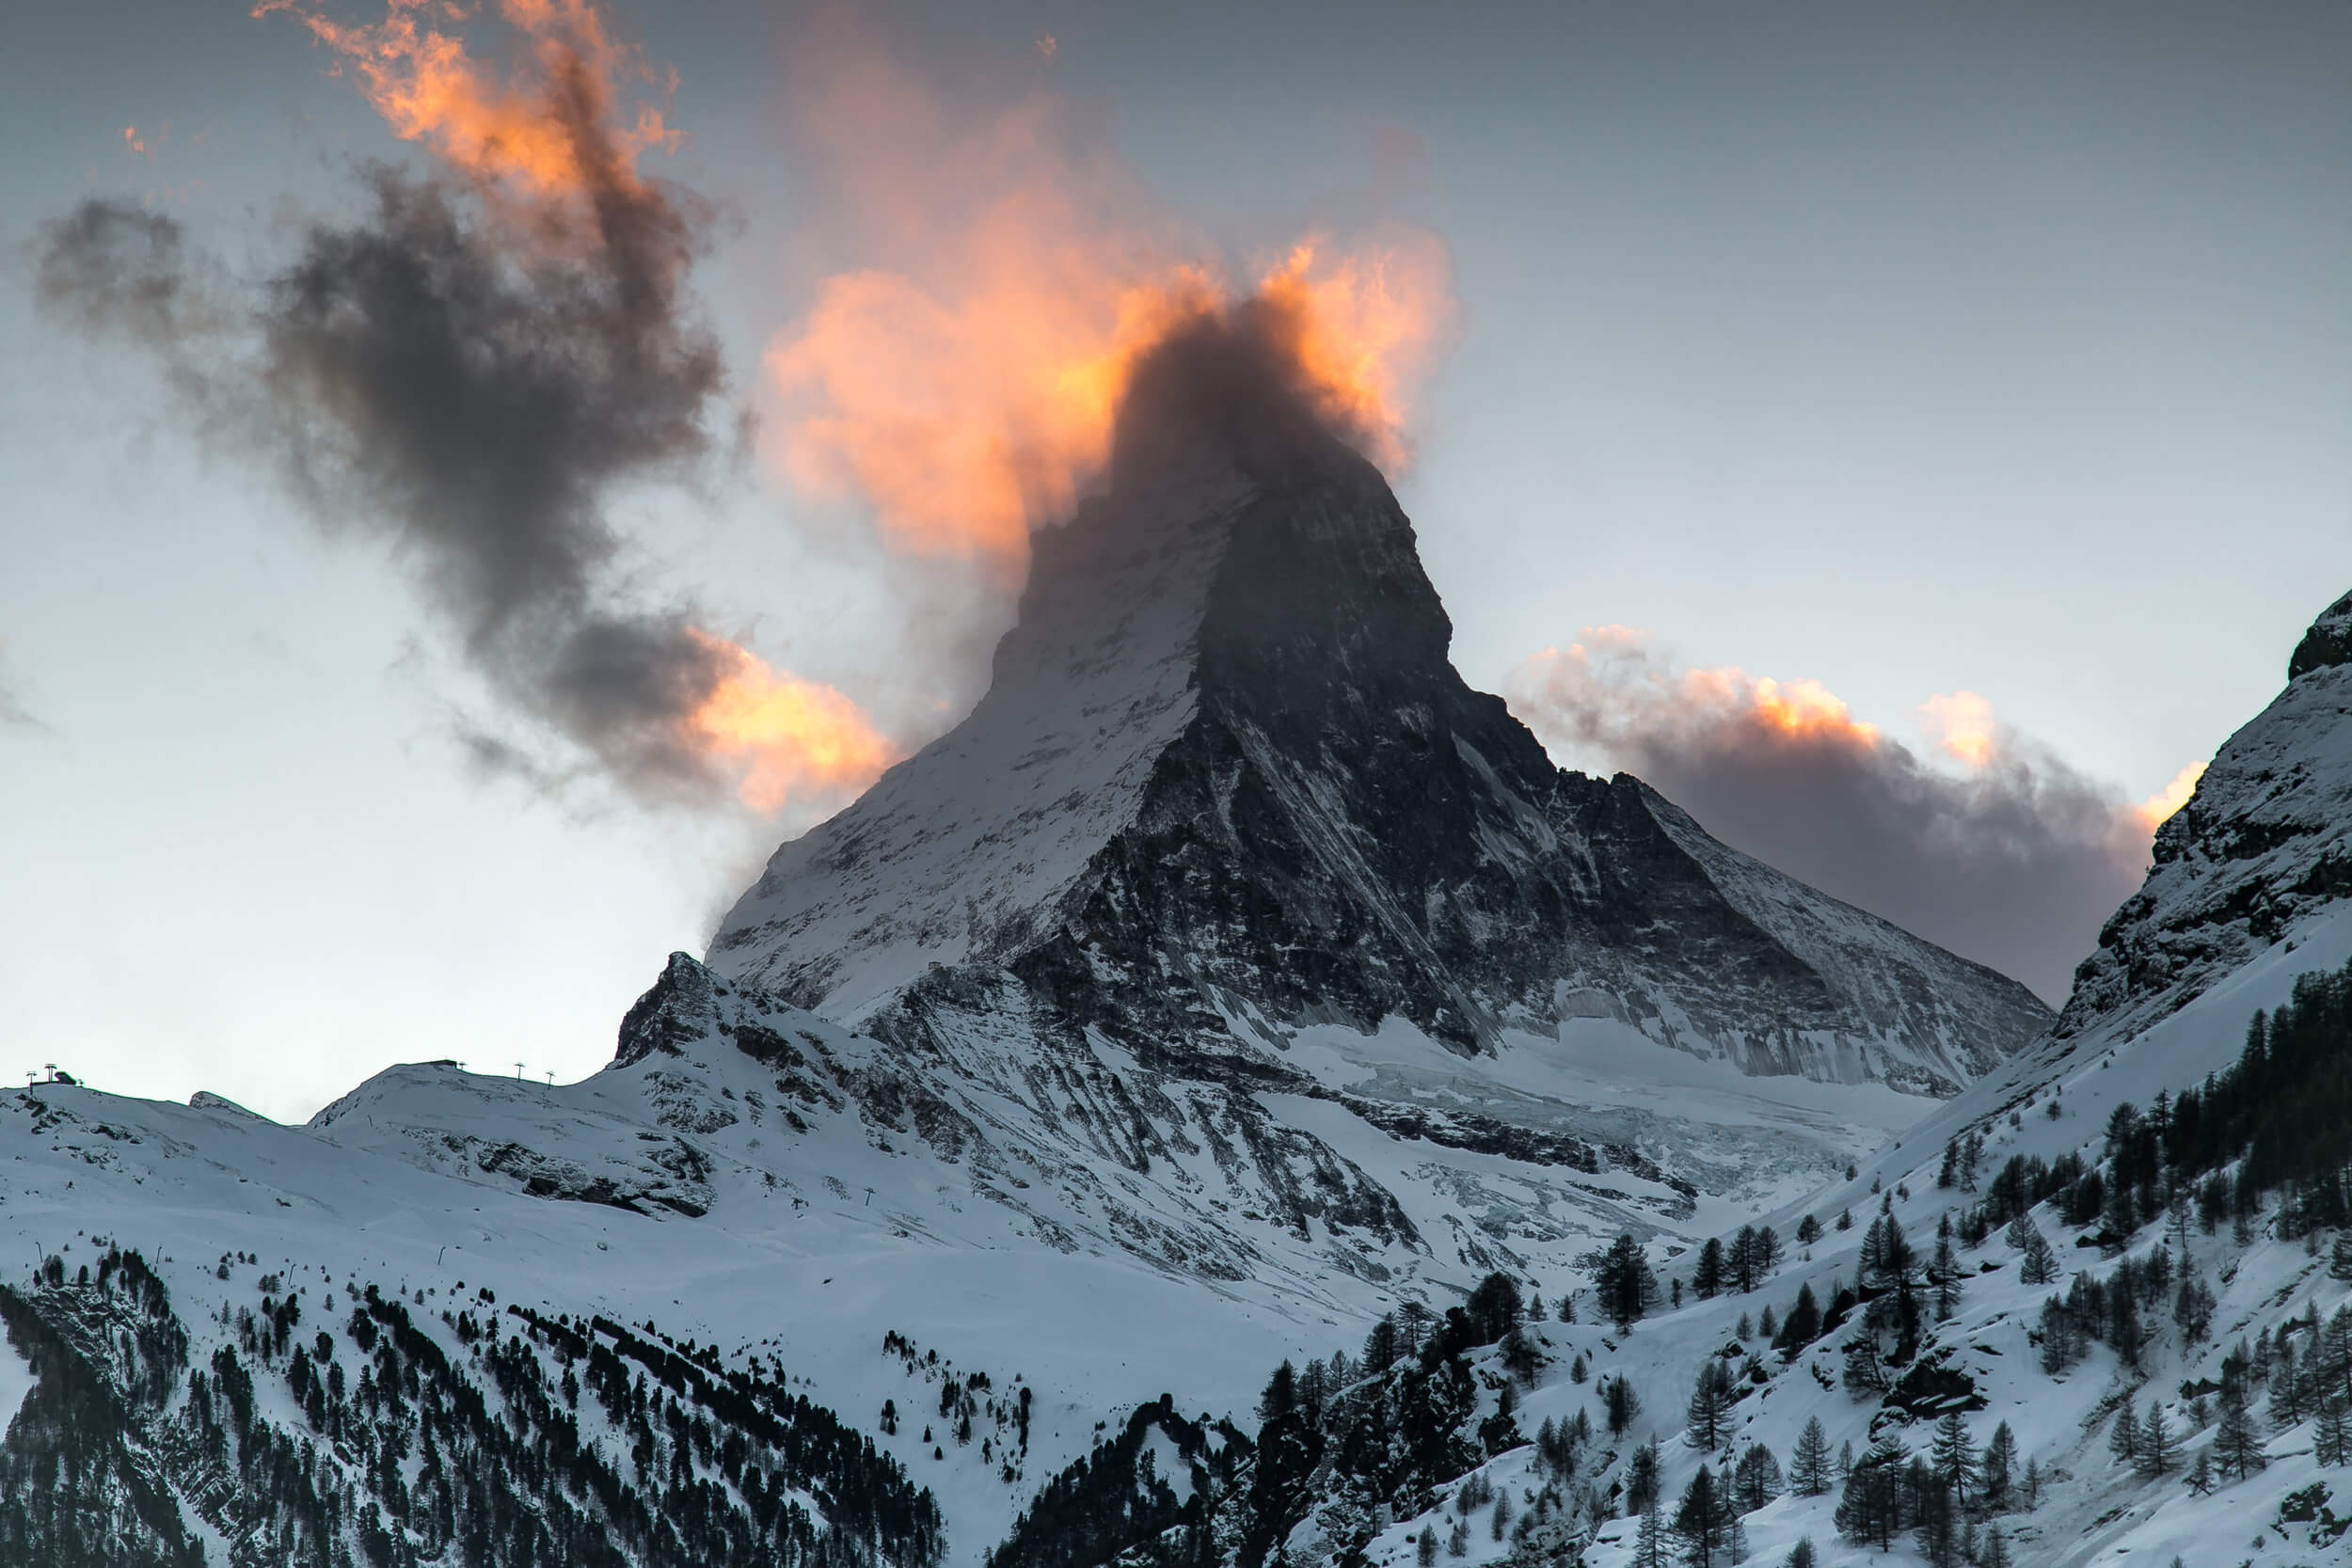 Matterhorn at sunrise, Zermatt, Switzerland